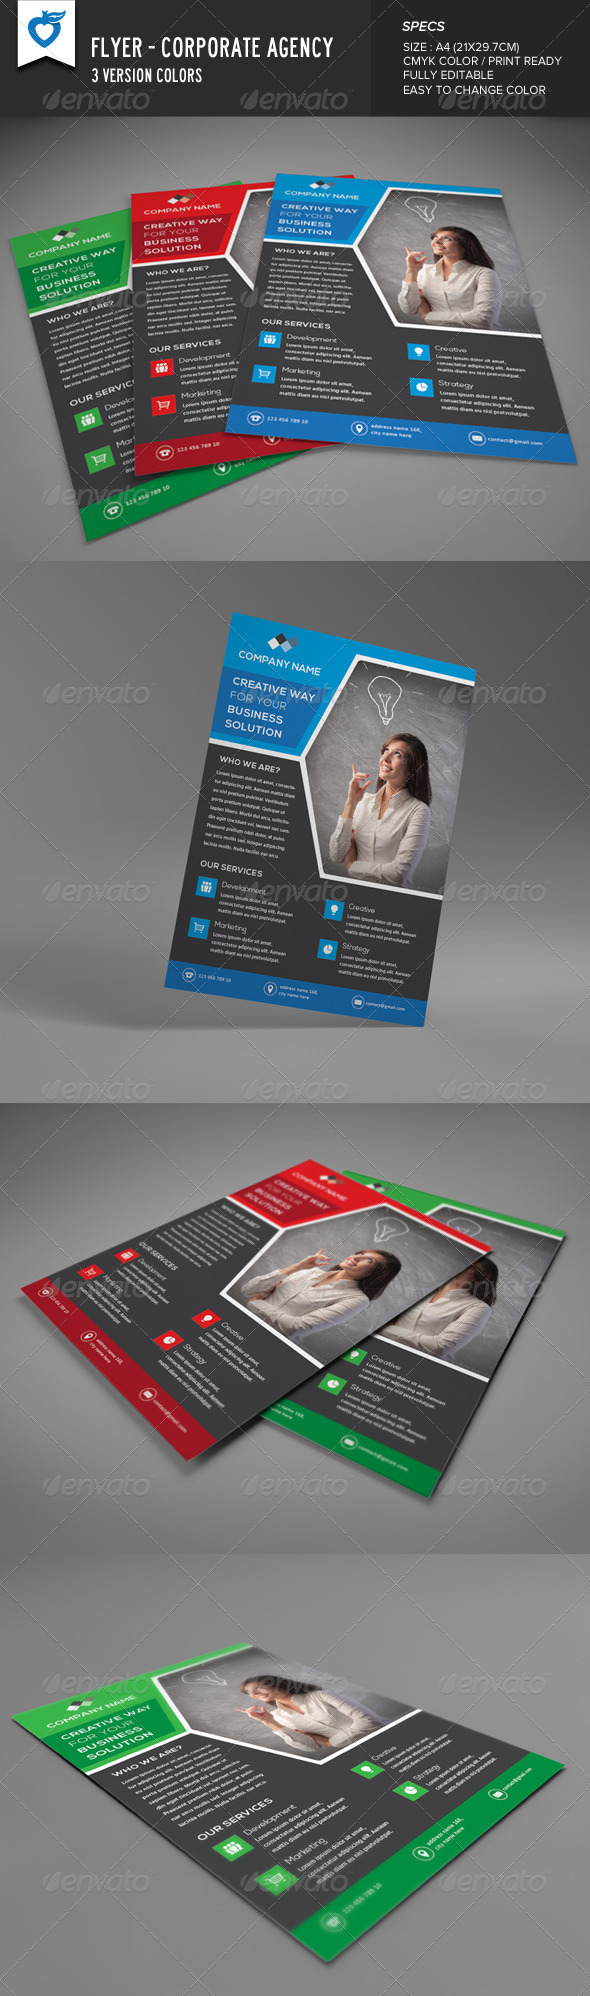 GraphicRiver Corporate Flyer Agency 8589675